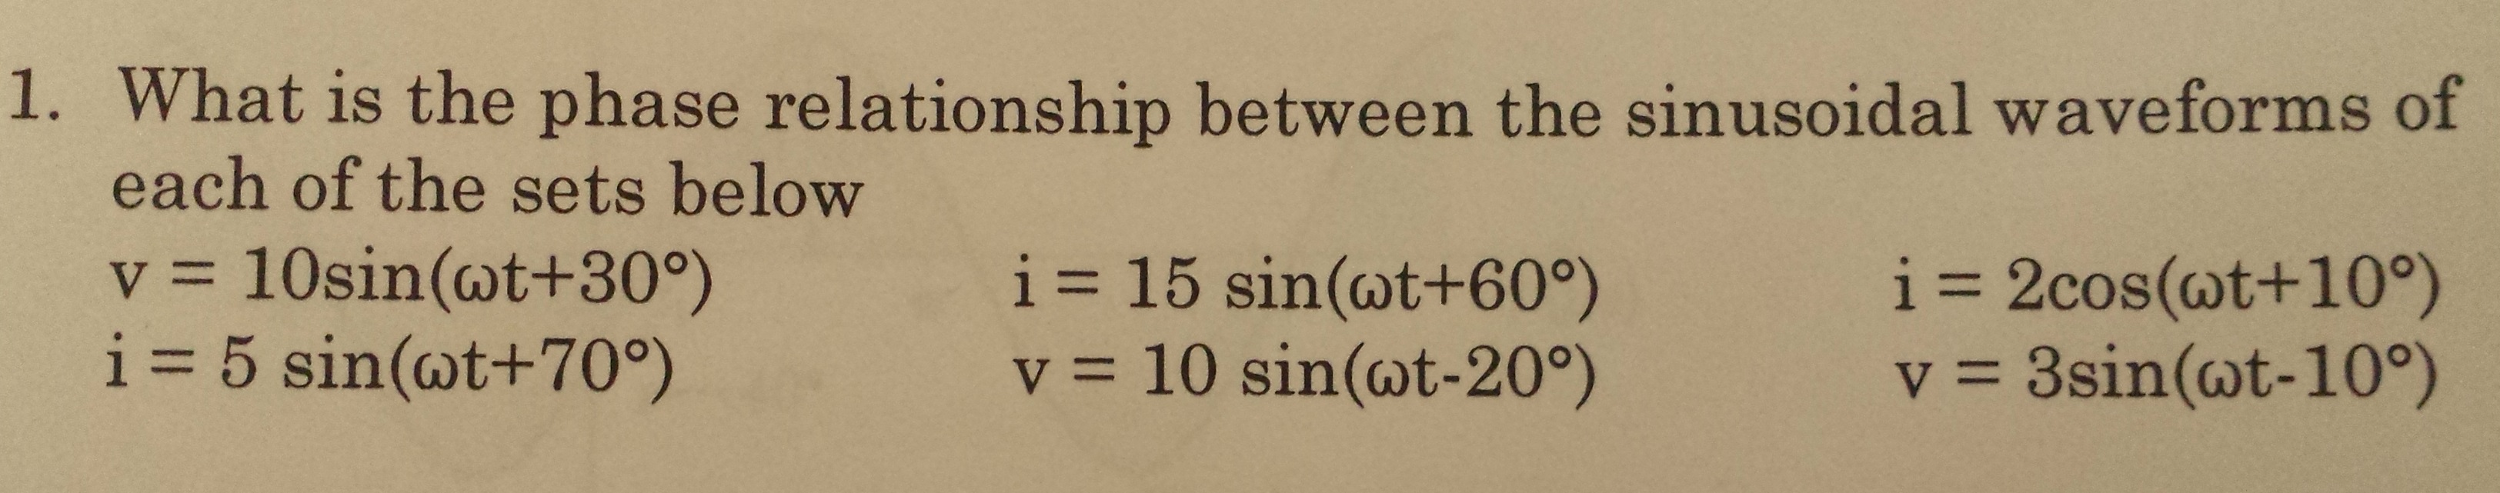 What is the phase relationship between the sinusoi